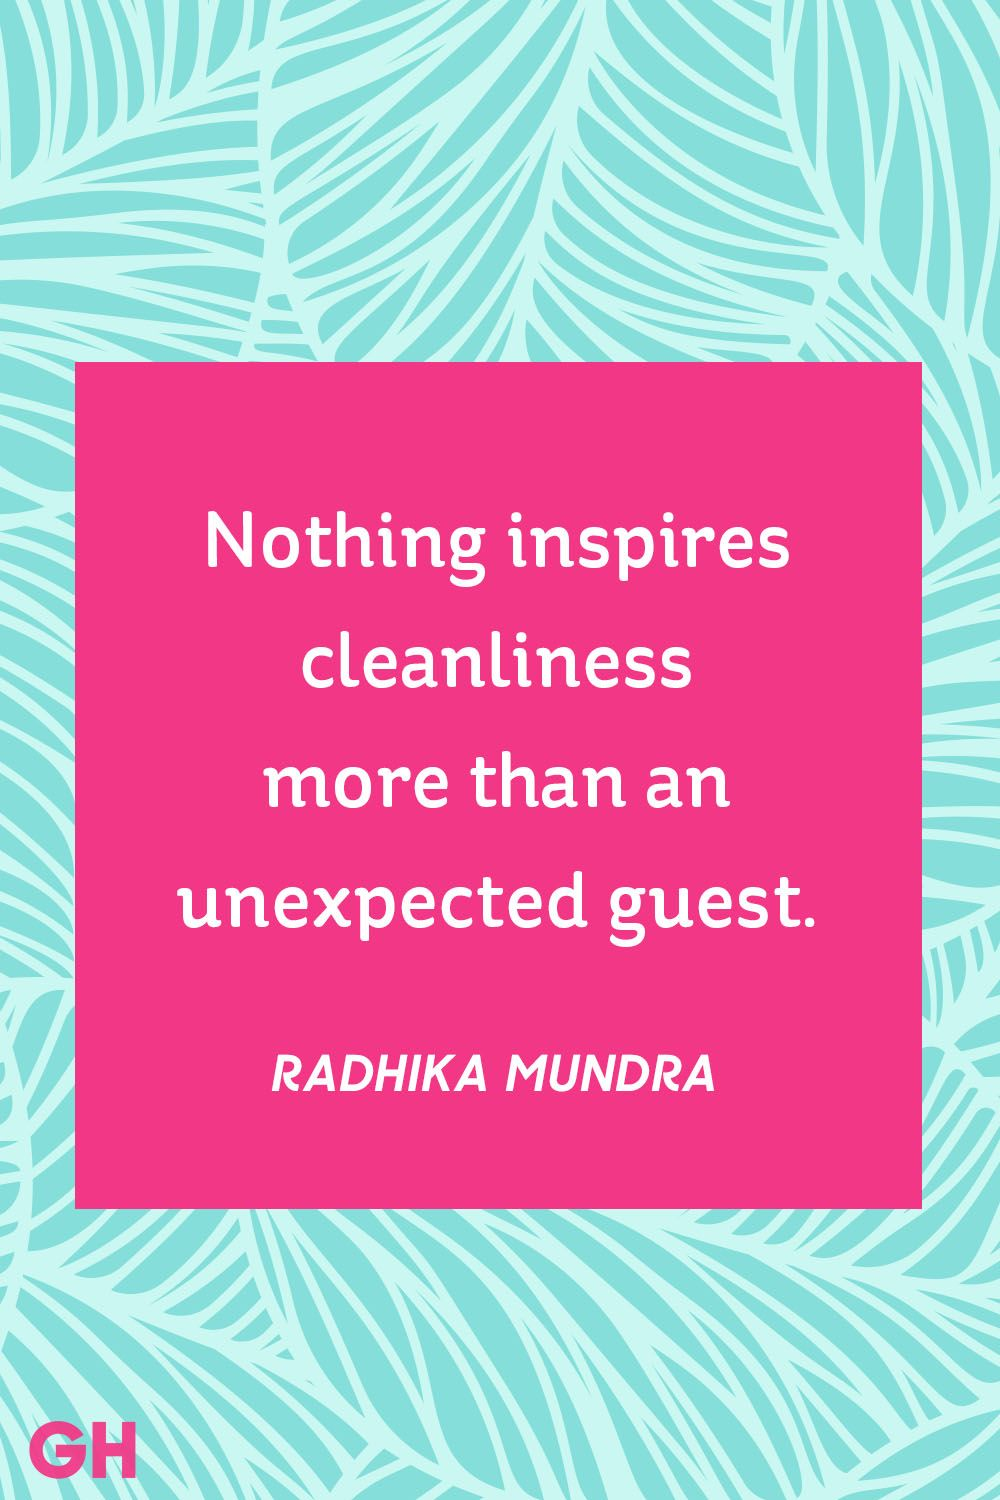 radhika mundra funny cleaning quotes